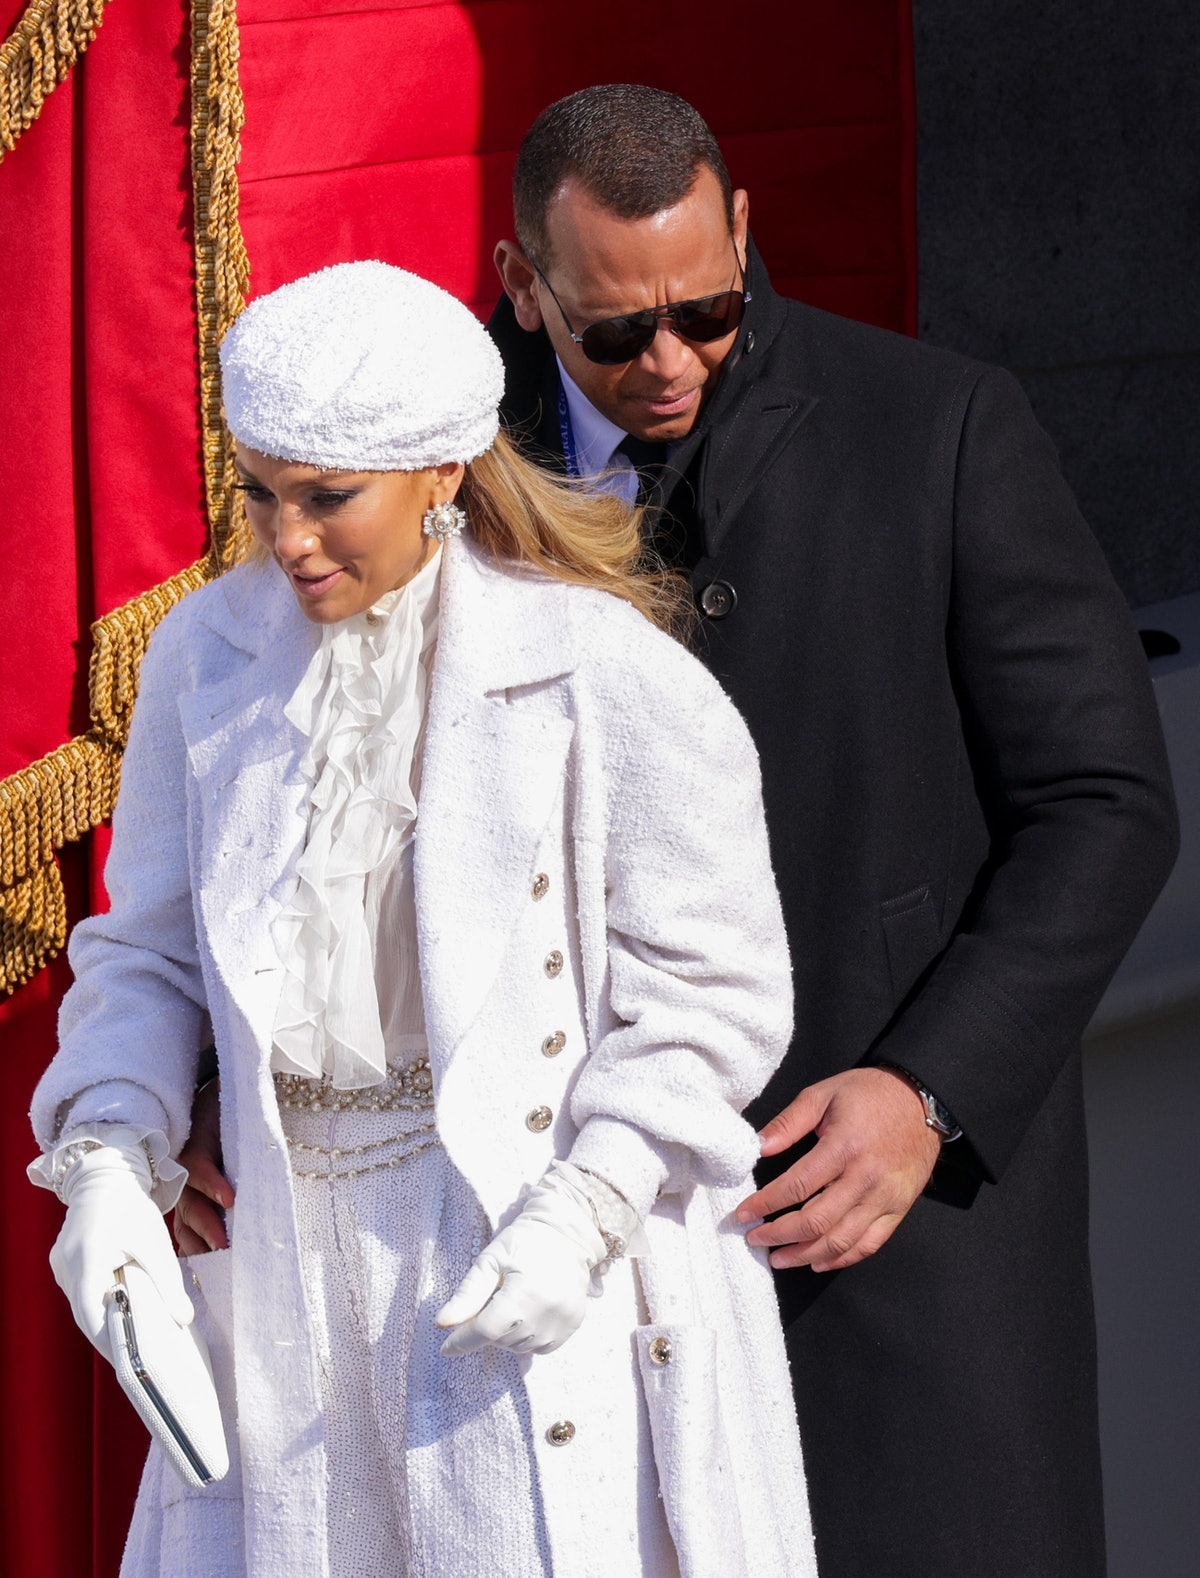 Jennifer Lopez wore an all-white Chanel outfit to President Joe Biden's inauguration.